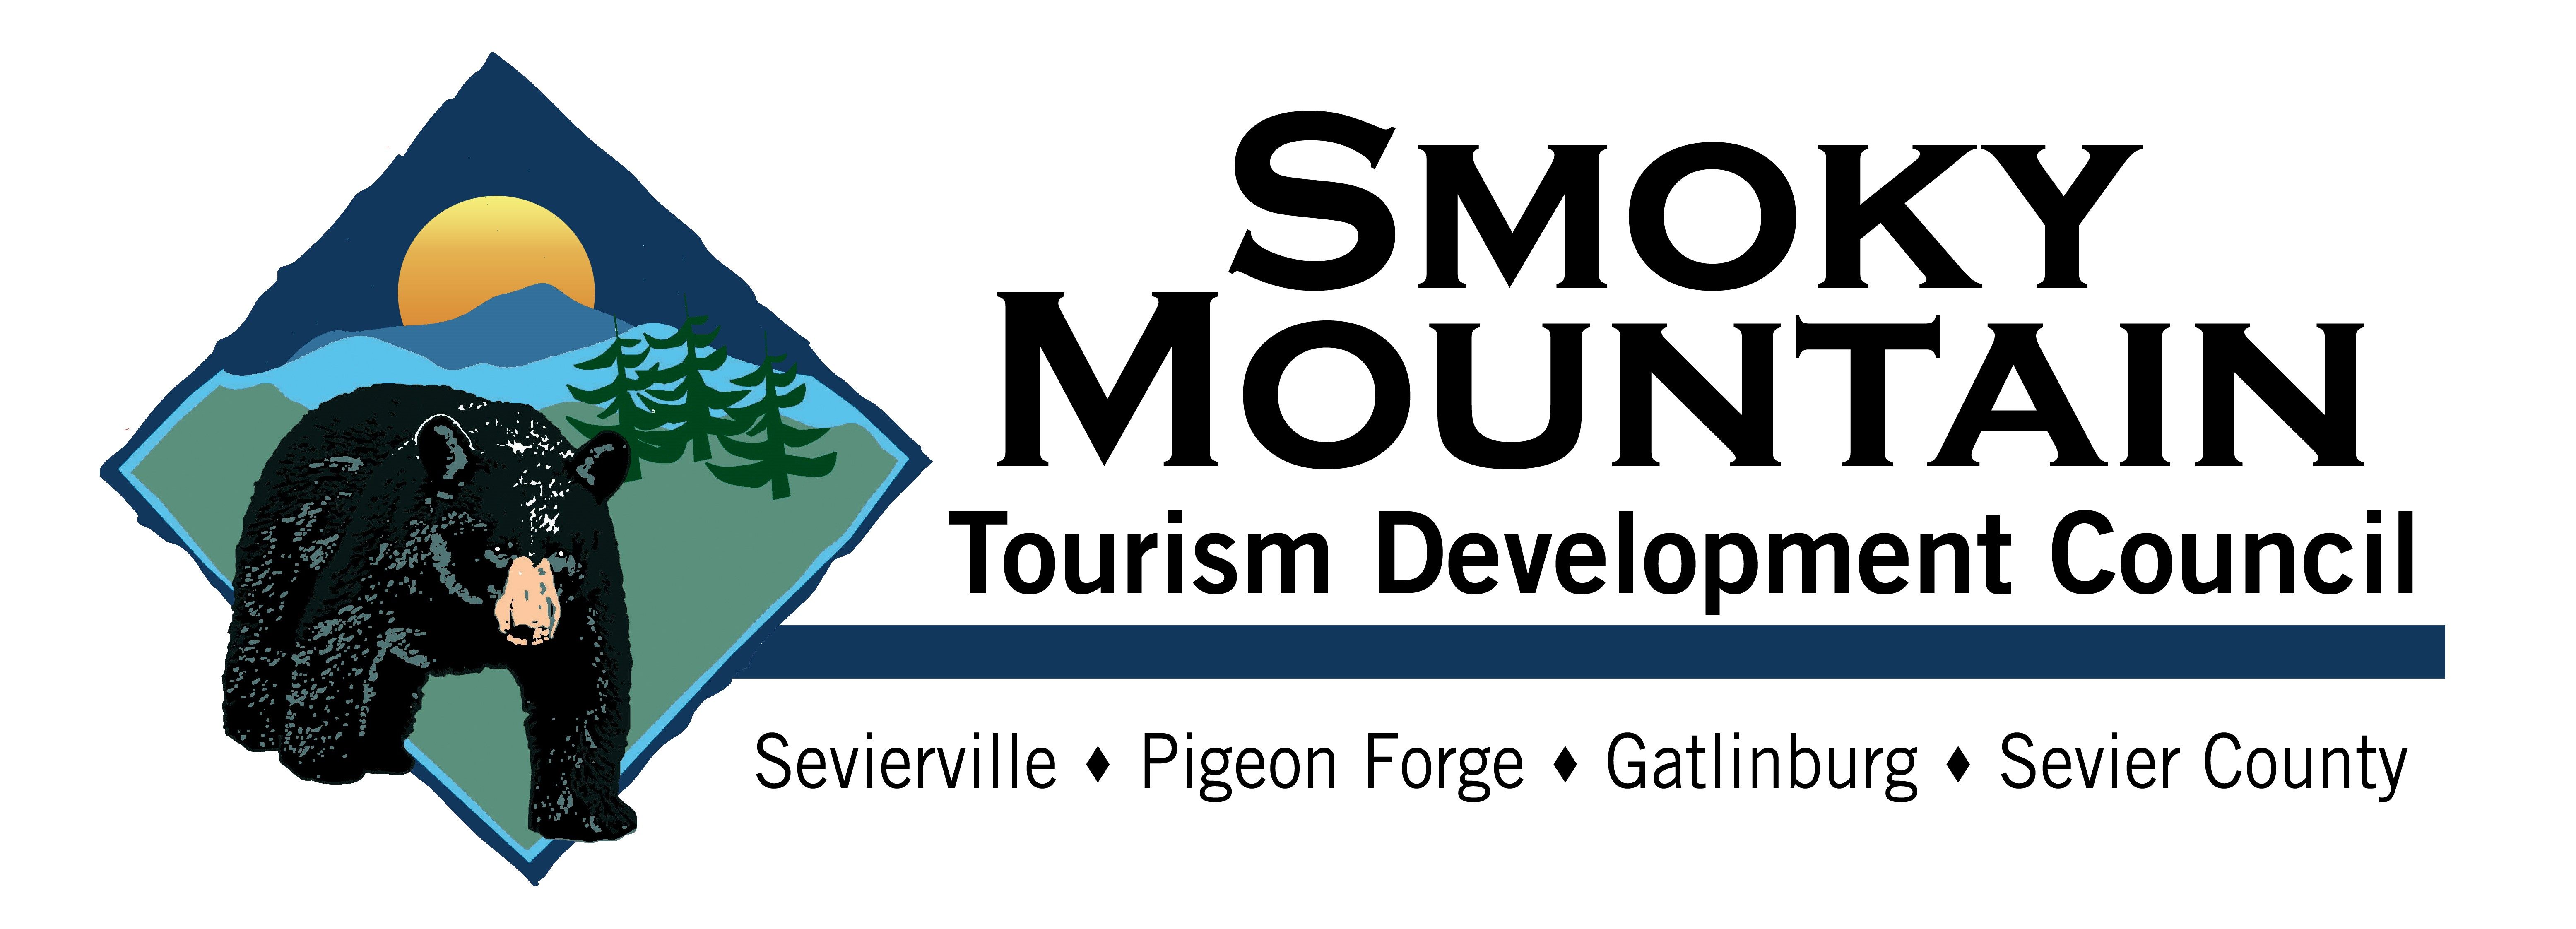 Smoky Mountain Tourism Development Council